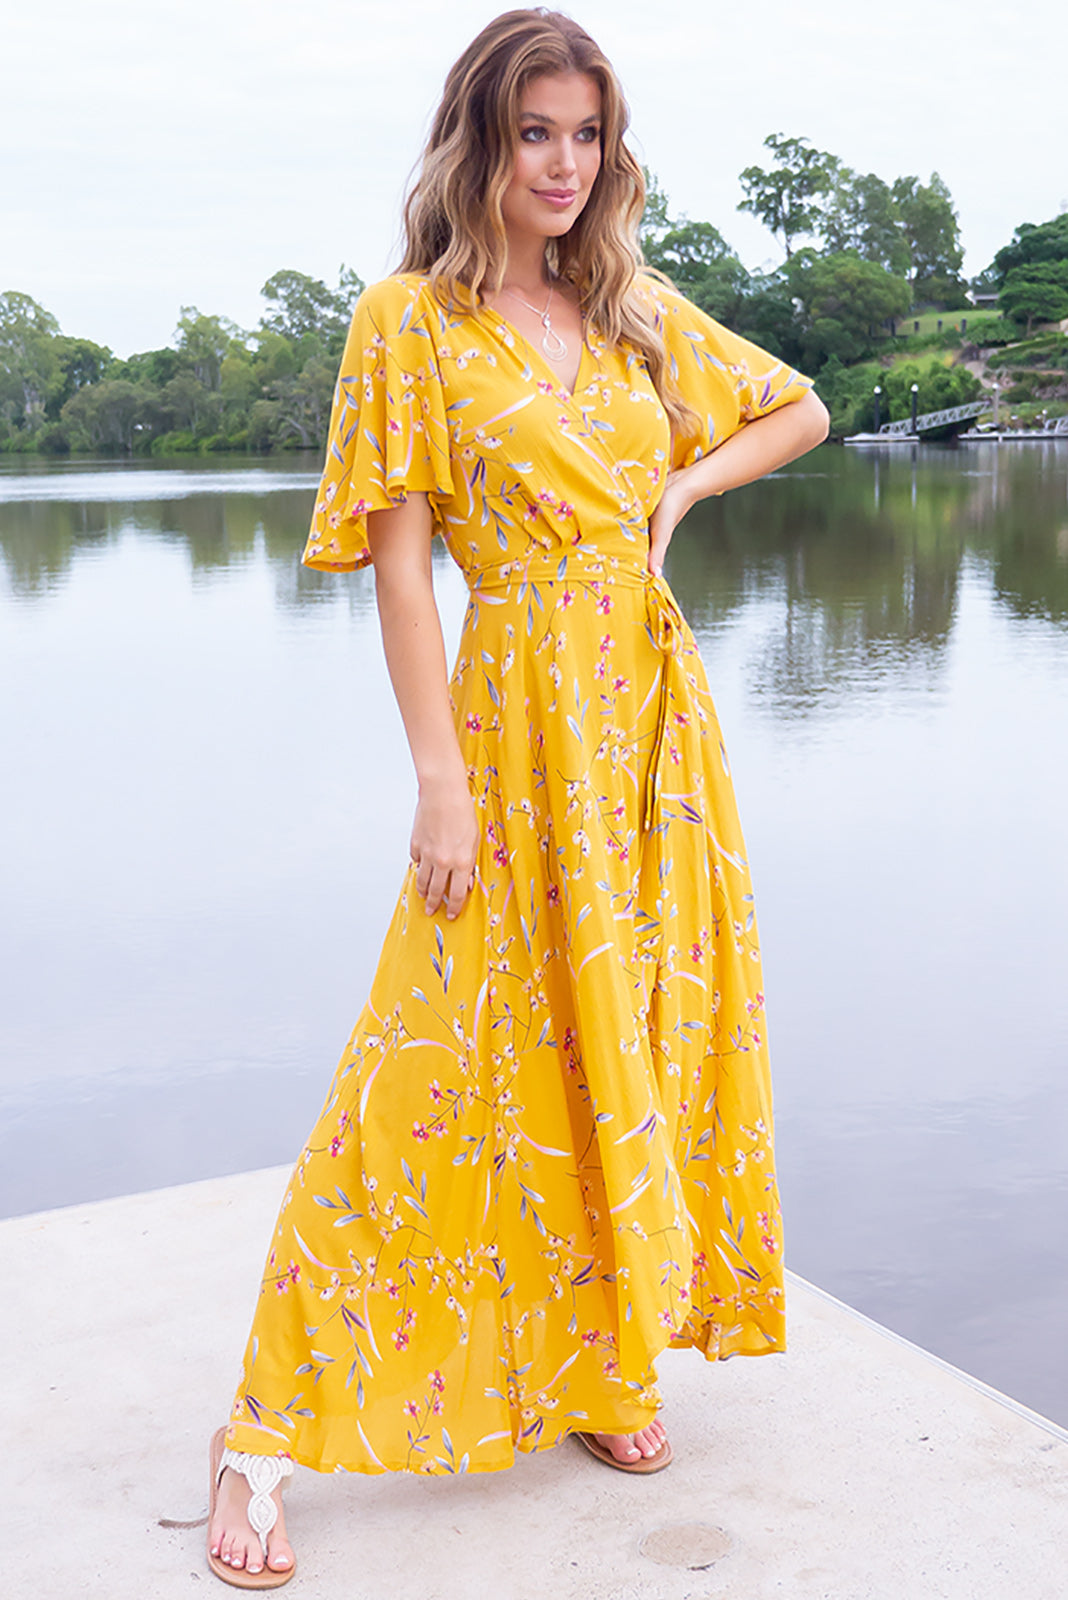 The Cinnamon Nectar Gold Maxi Wrap dress is sweet and summery featuring flutter sleeves, adjustable wrap tie waist, elasticated back waist band, scooped hem, shorter at the front, warm gold base with multi-coloured floral design featuring pastel pink, fuchsia and grey in crinkle textured woven 100% rayon.